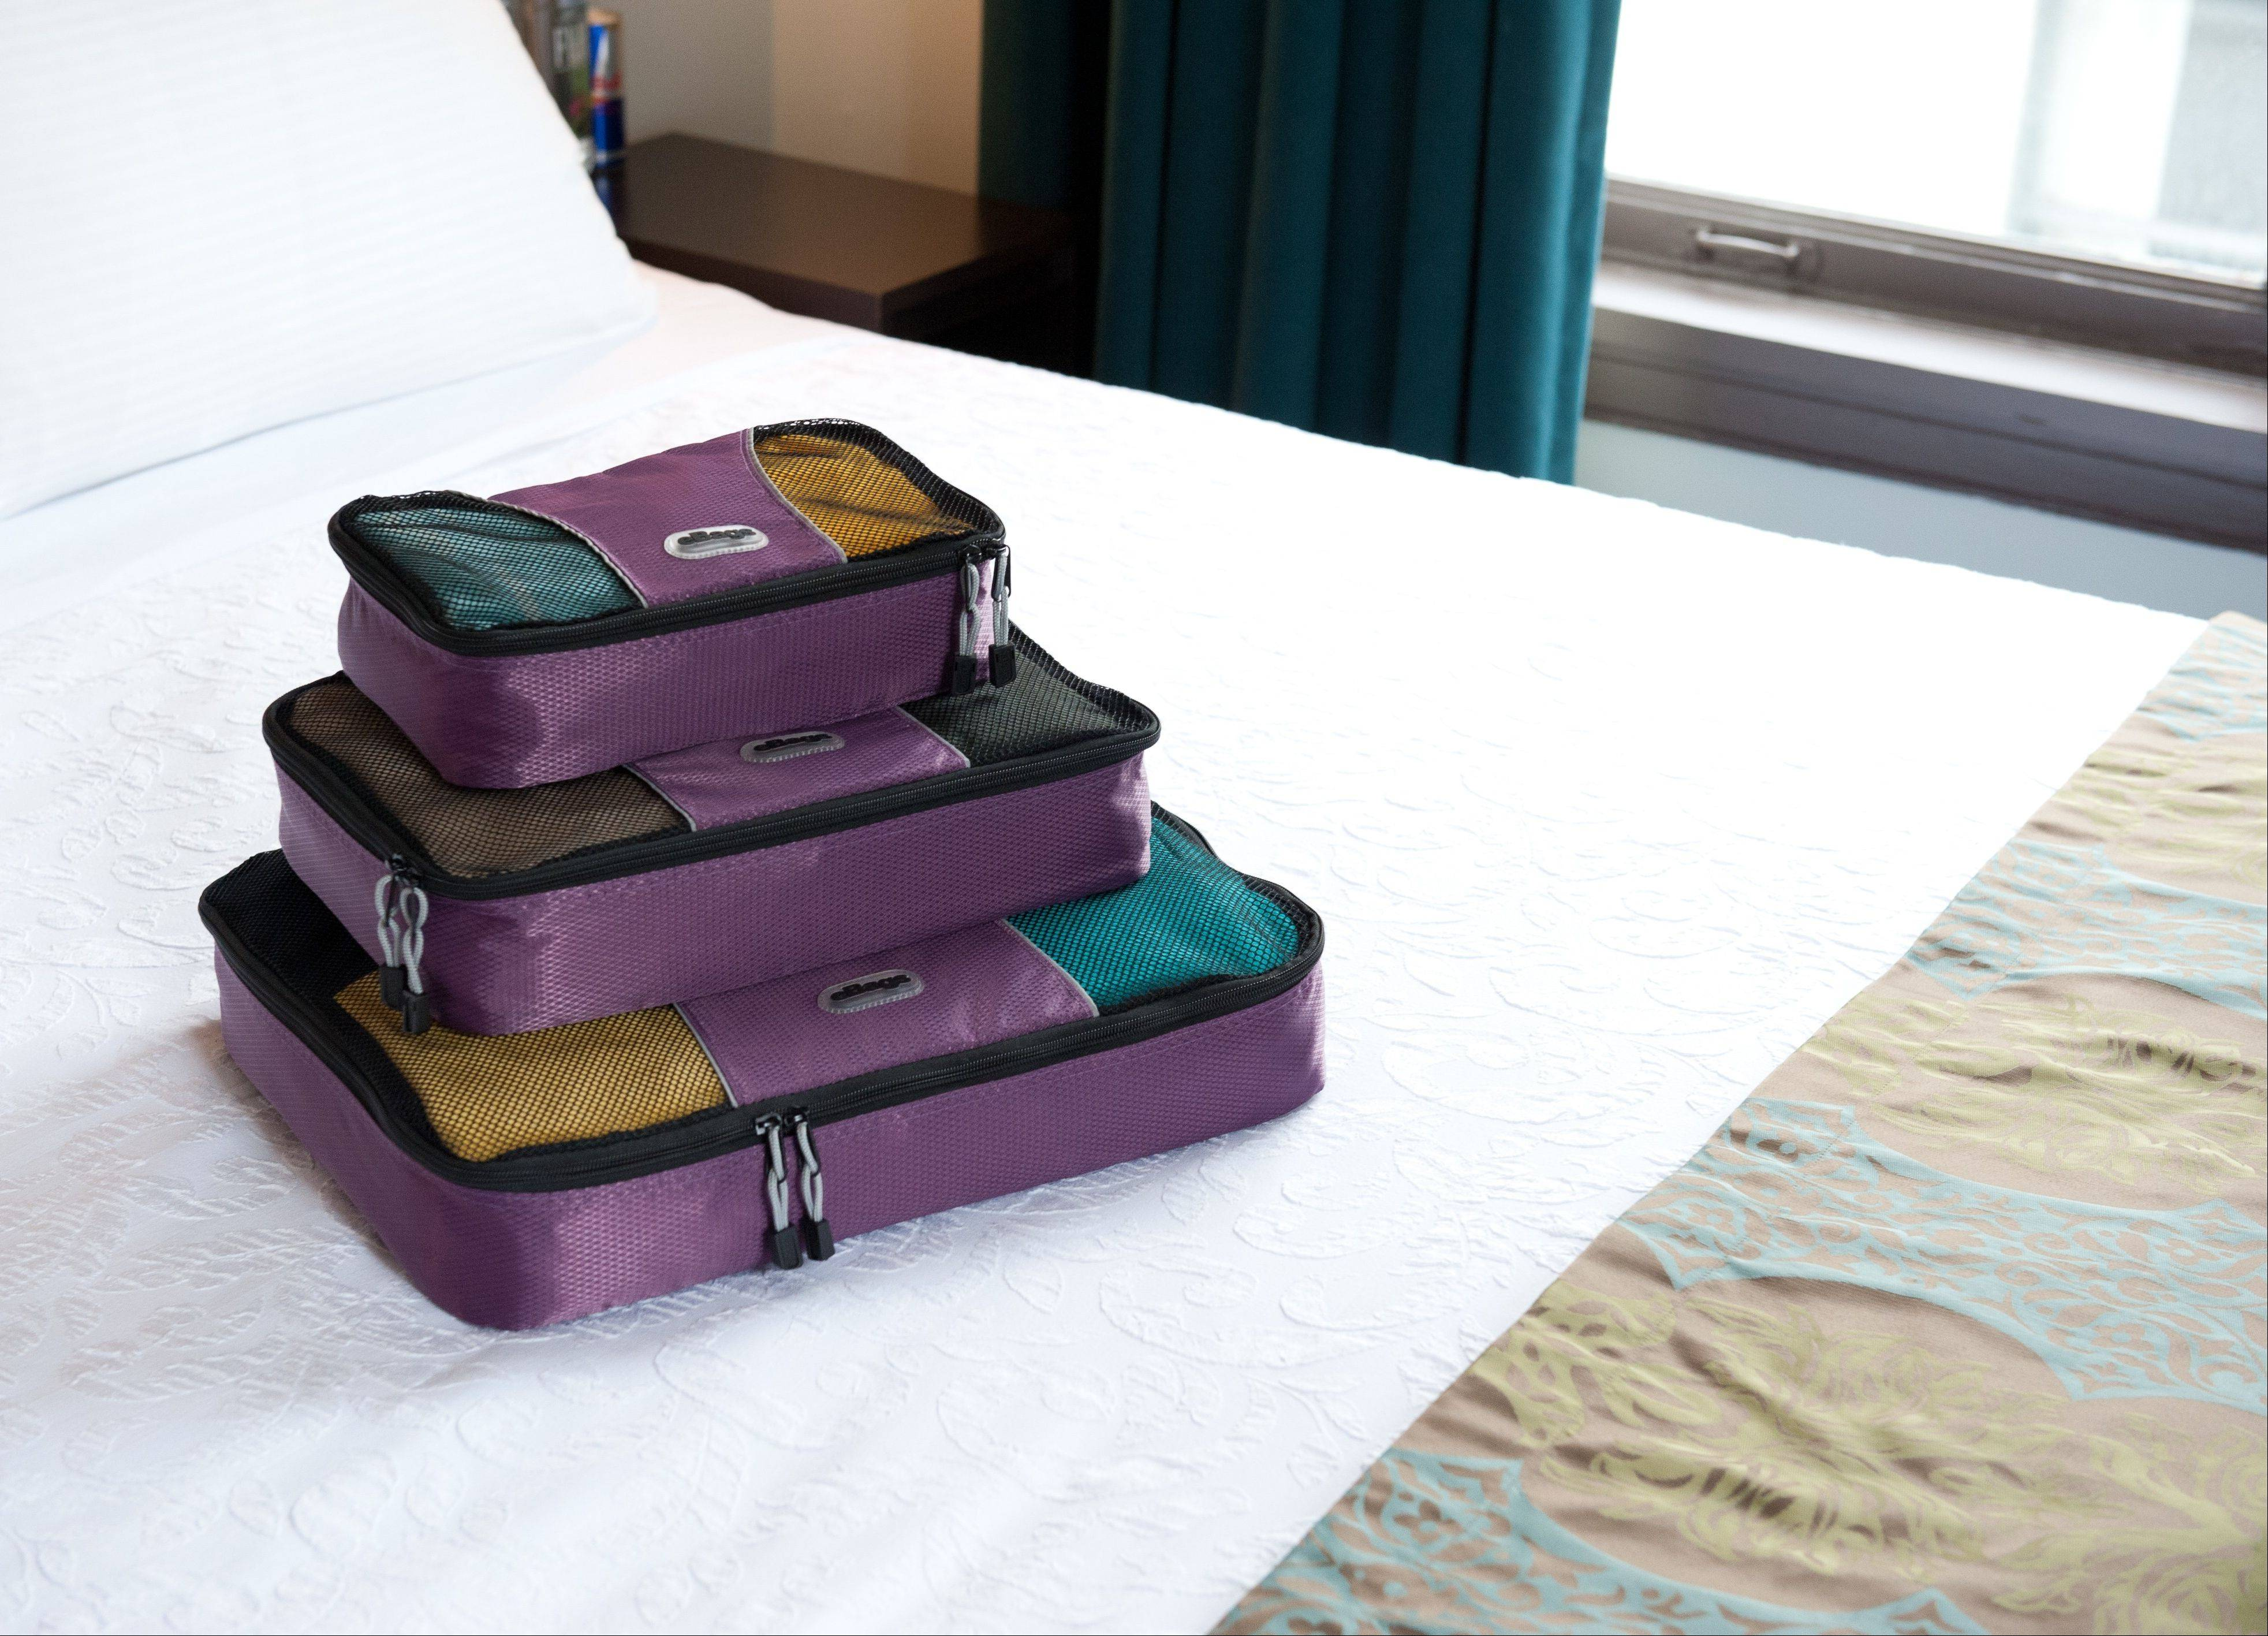 Packing cubes by ebags.com can help travelers organize their belongings and save space when packing for trips.